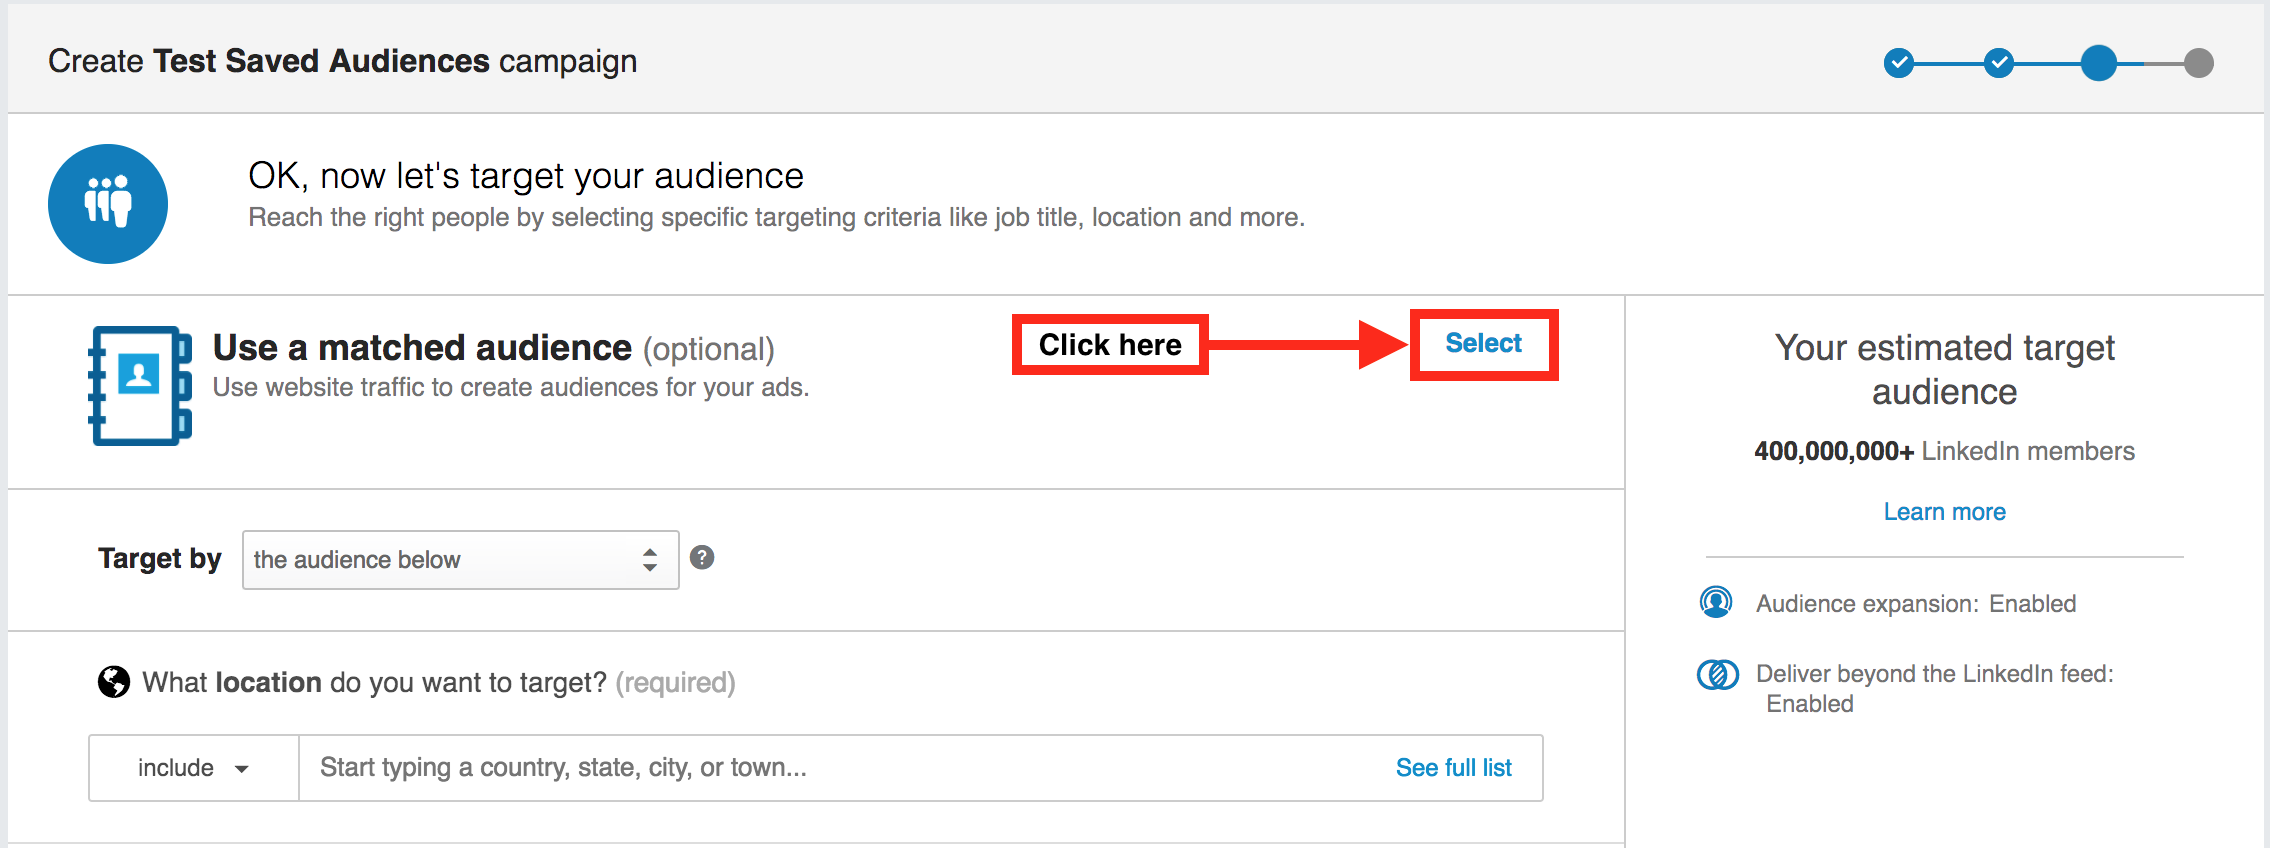 Selecting a matched audience from within a LinkedIn advertising campaign